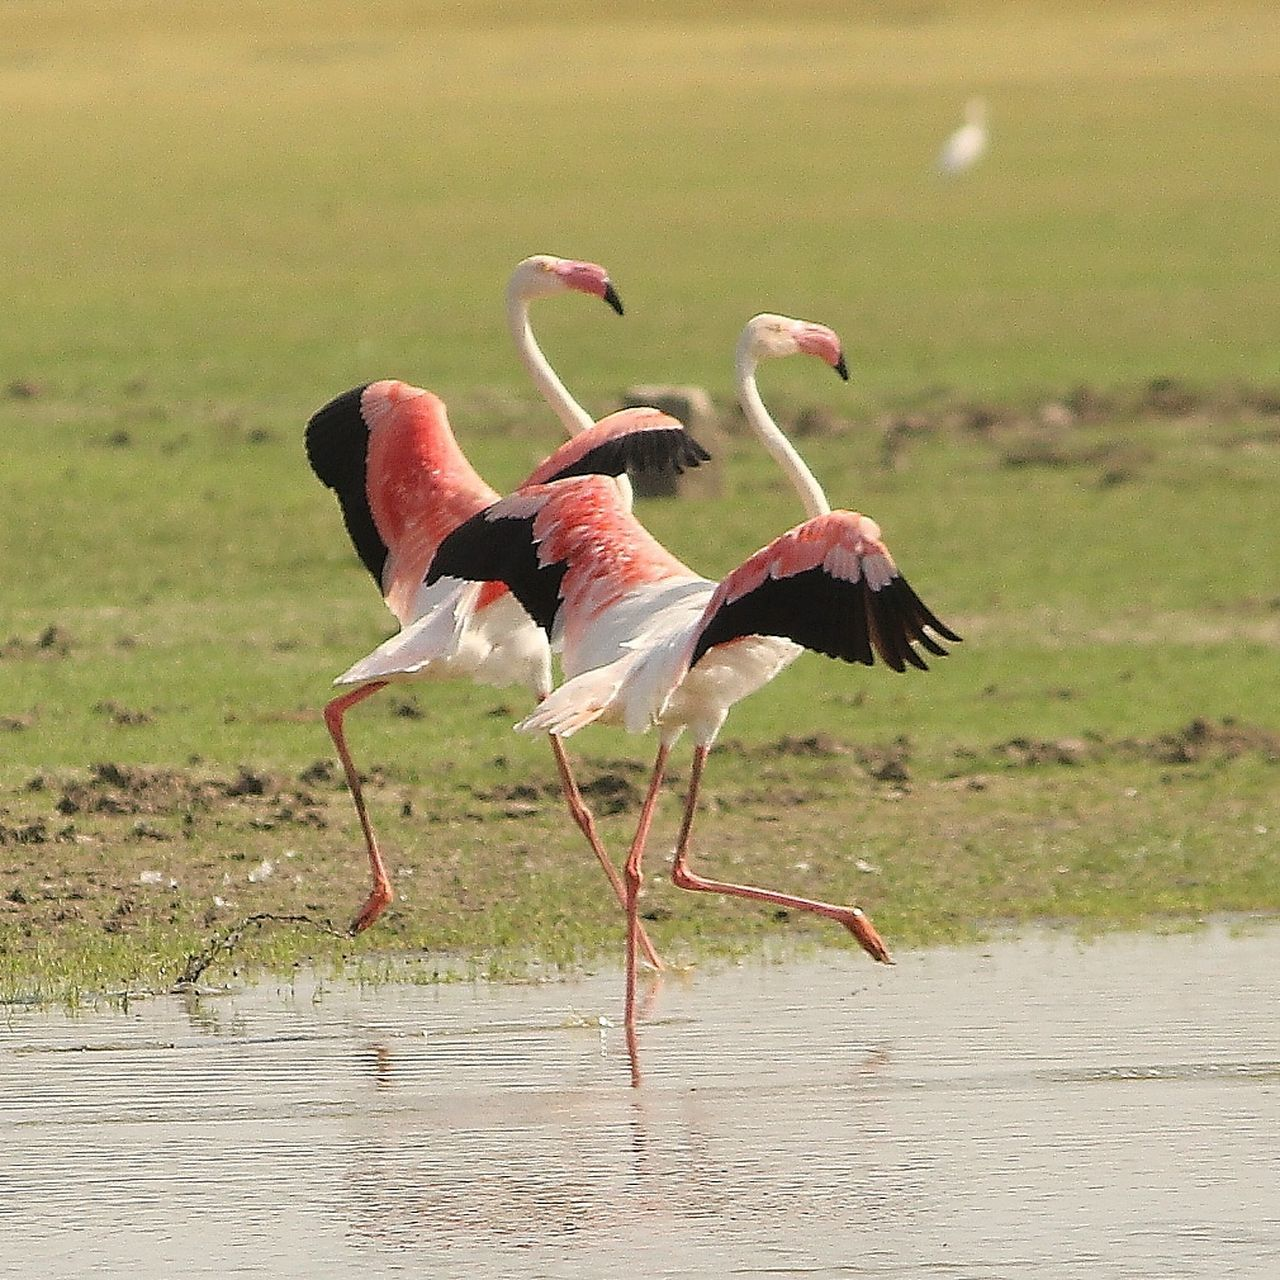 bird, animals in the wild, animal wildlife, nature, water, animal themes, no people, flamingo, stork, lake, beauty in nature, day, full length, outdoors